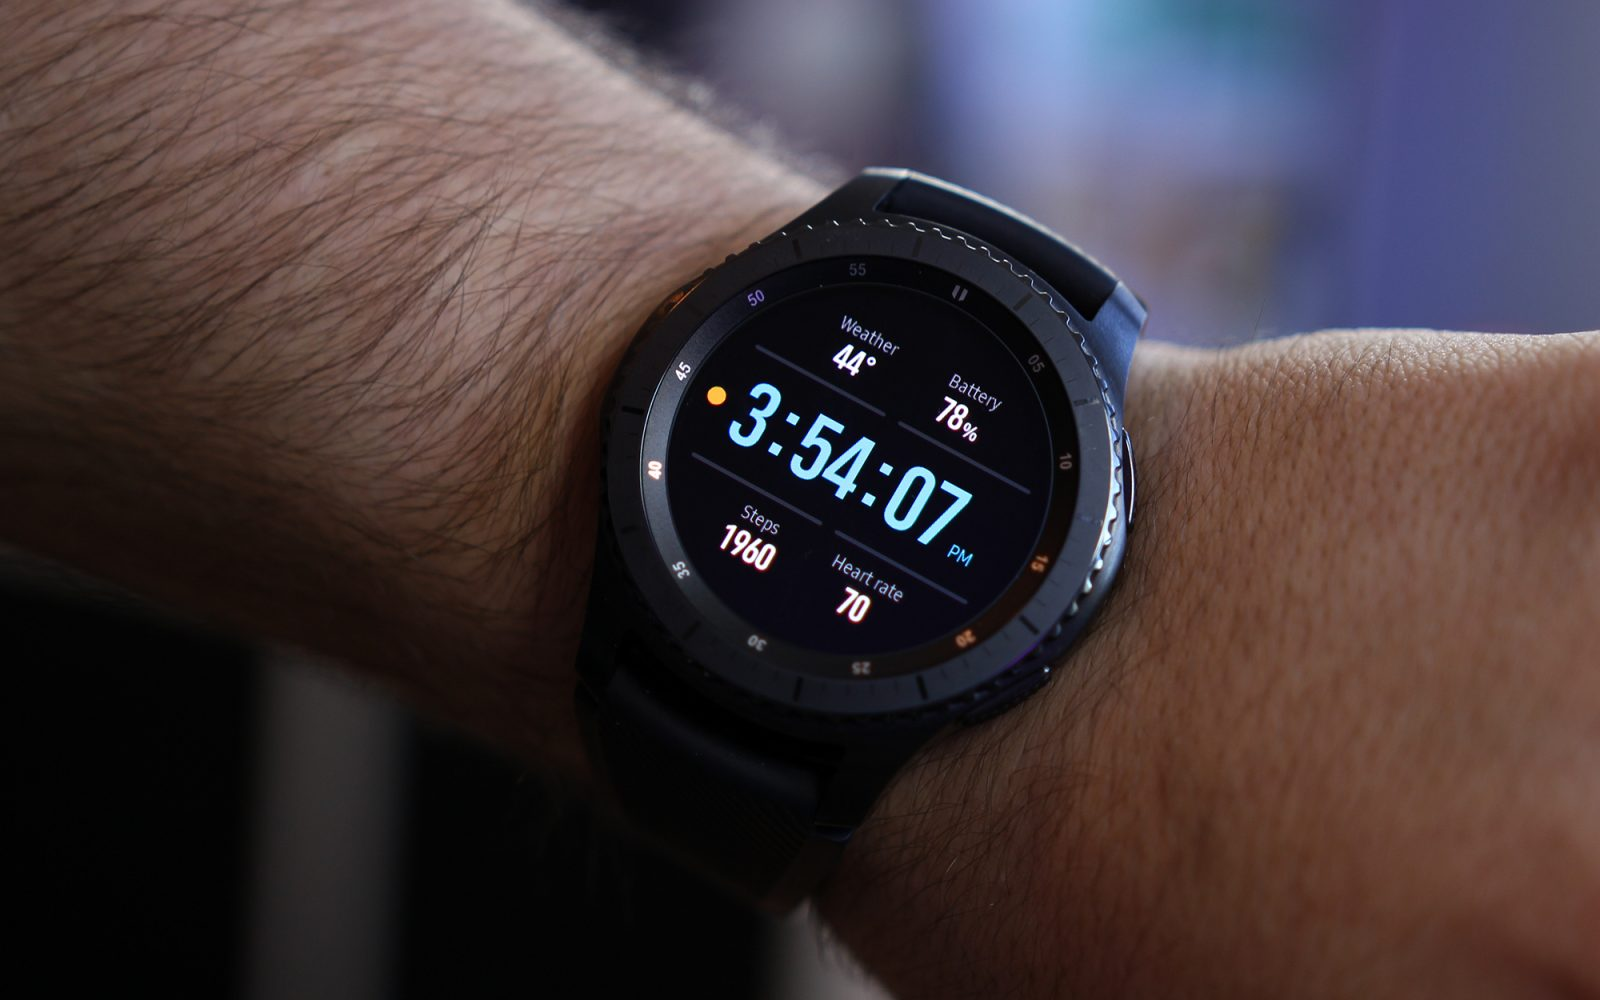 dc97dfa7d Samsung Gear S3 Review: This is the smartwatch of the future we've been  waiting for… [Video]